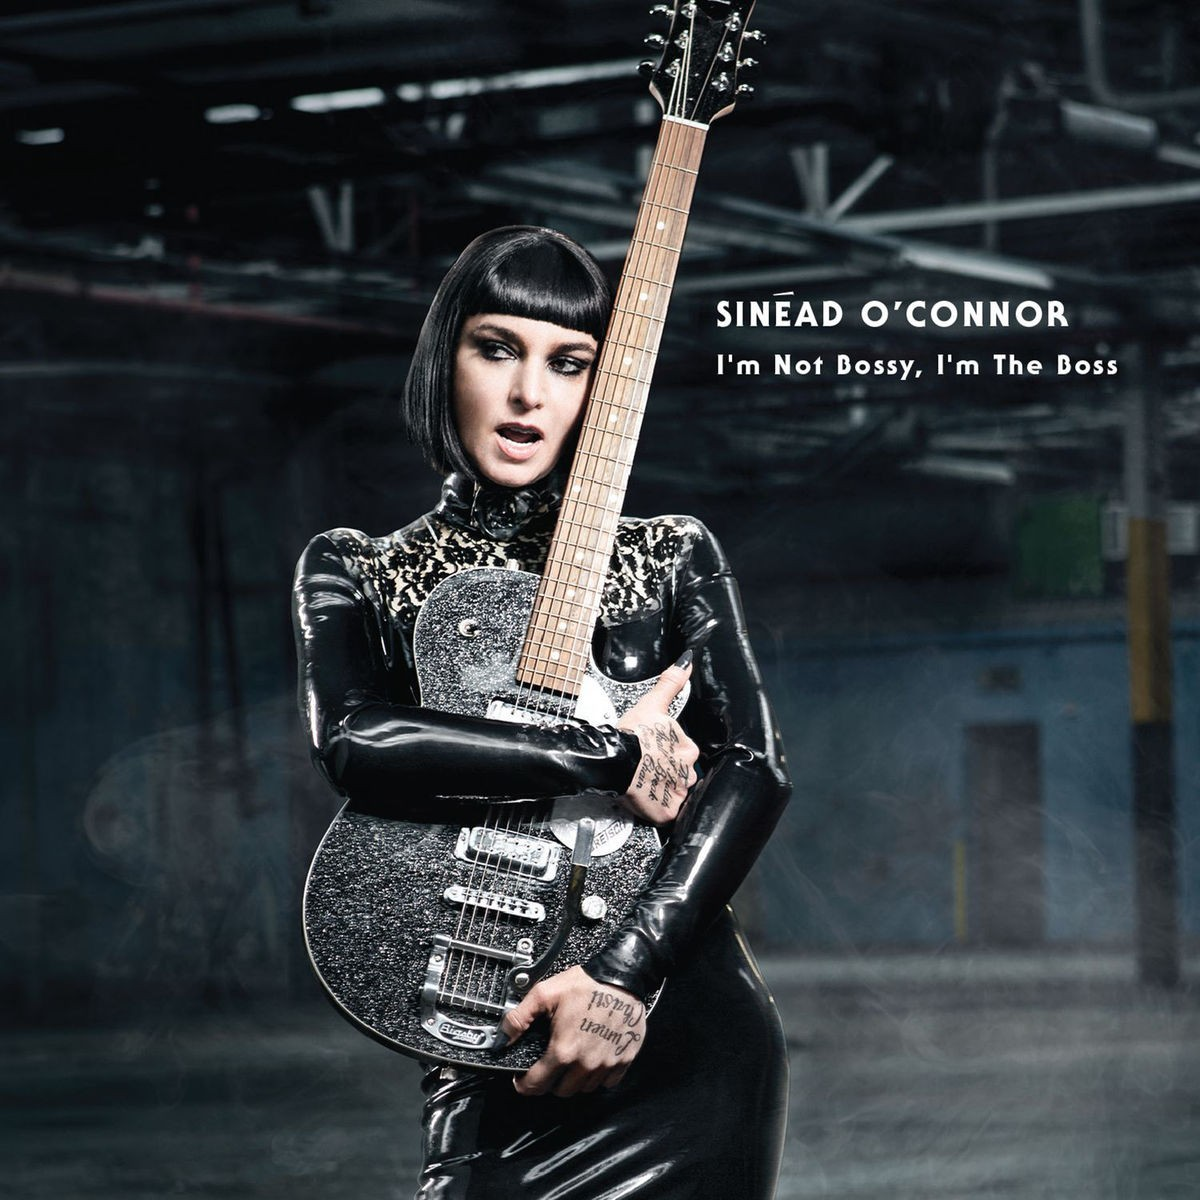 Sinéad O'Connor - I'm Not Bossy, I'm the Boss VINYL - 6700310221